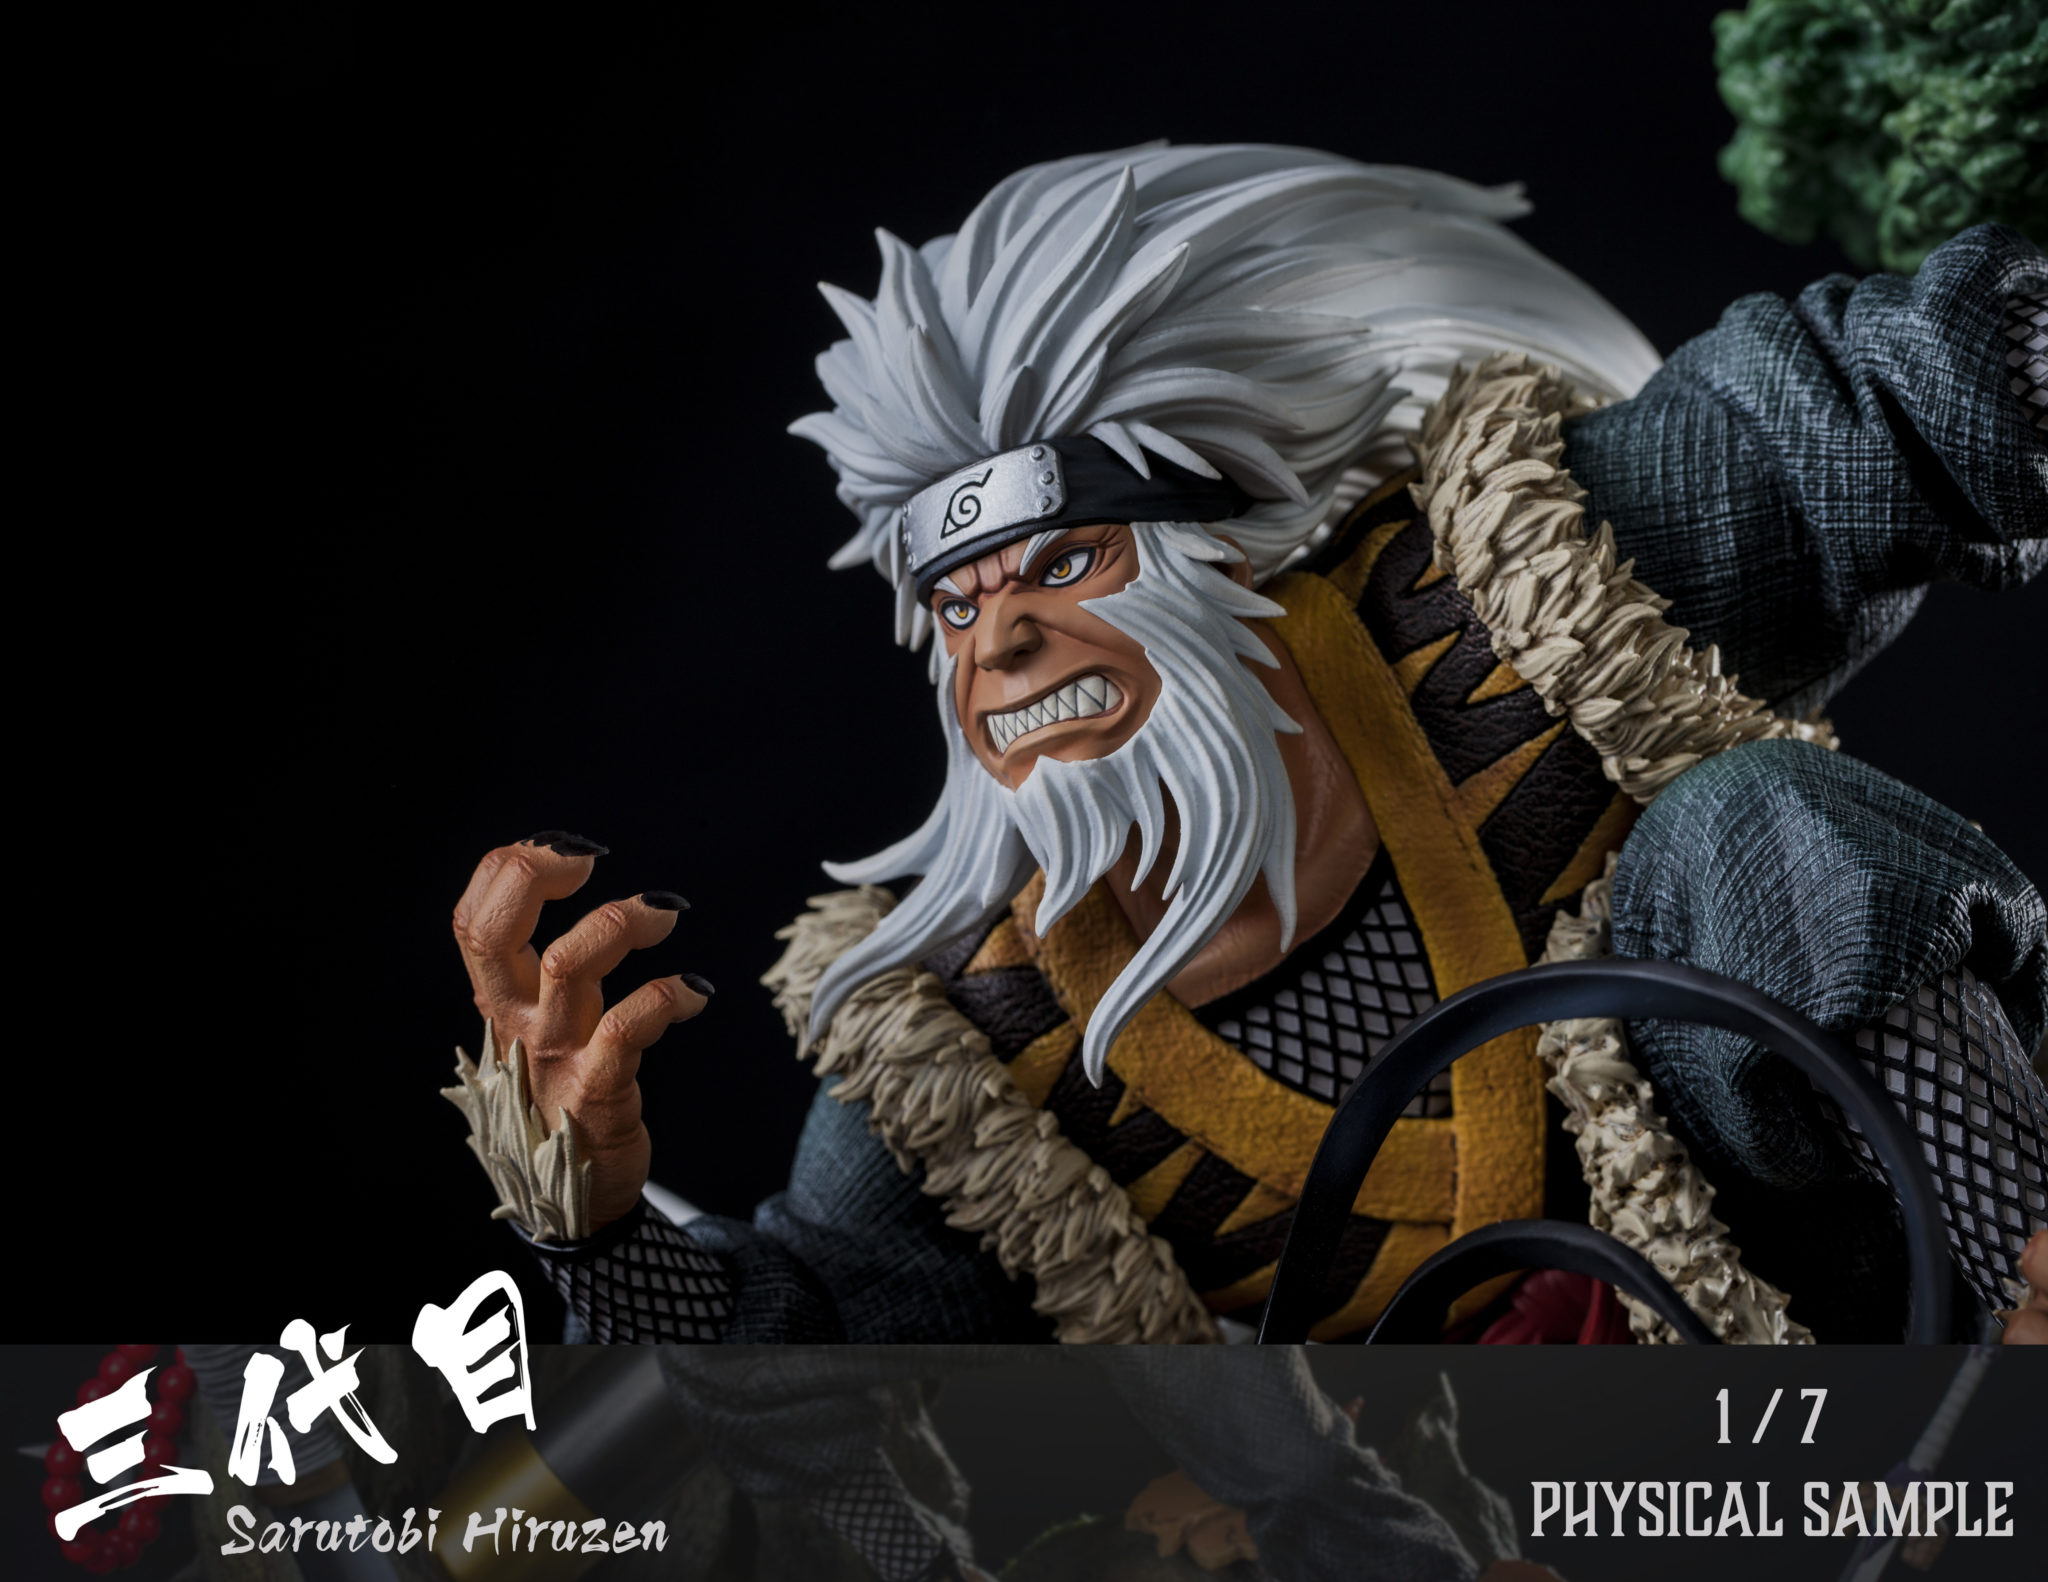 Clouds Studio Hiruzen Sarutobi 1/7 Scale Statue Moneky King Enma Closeup